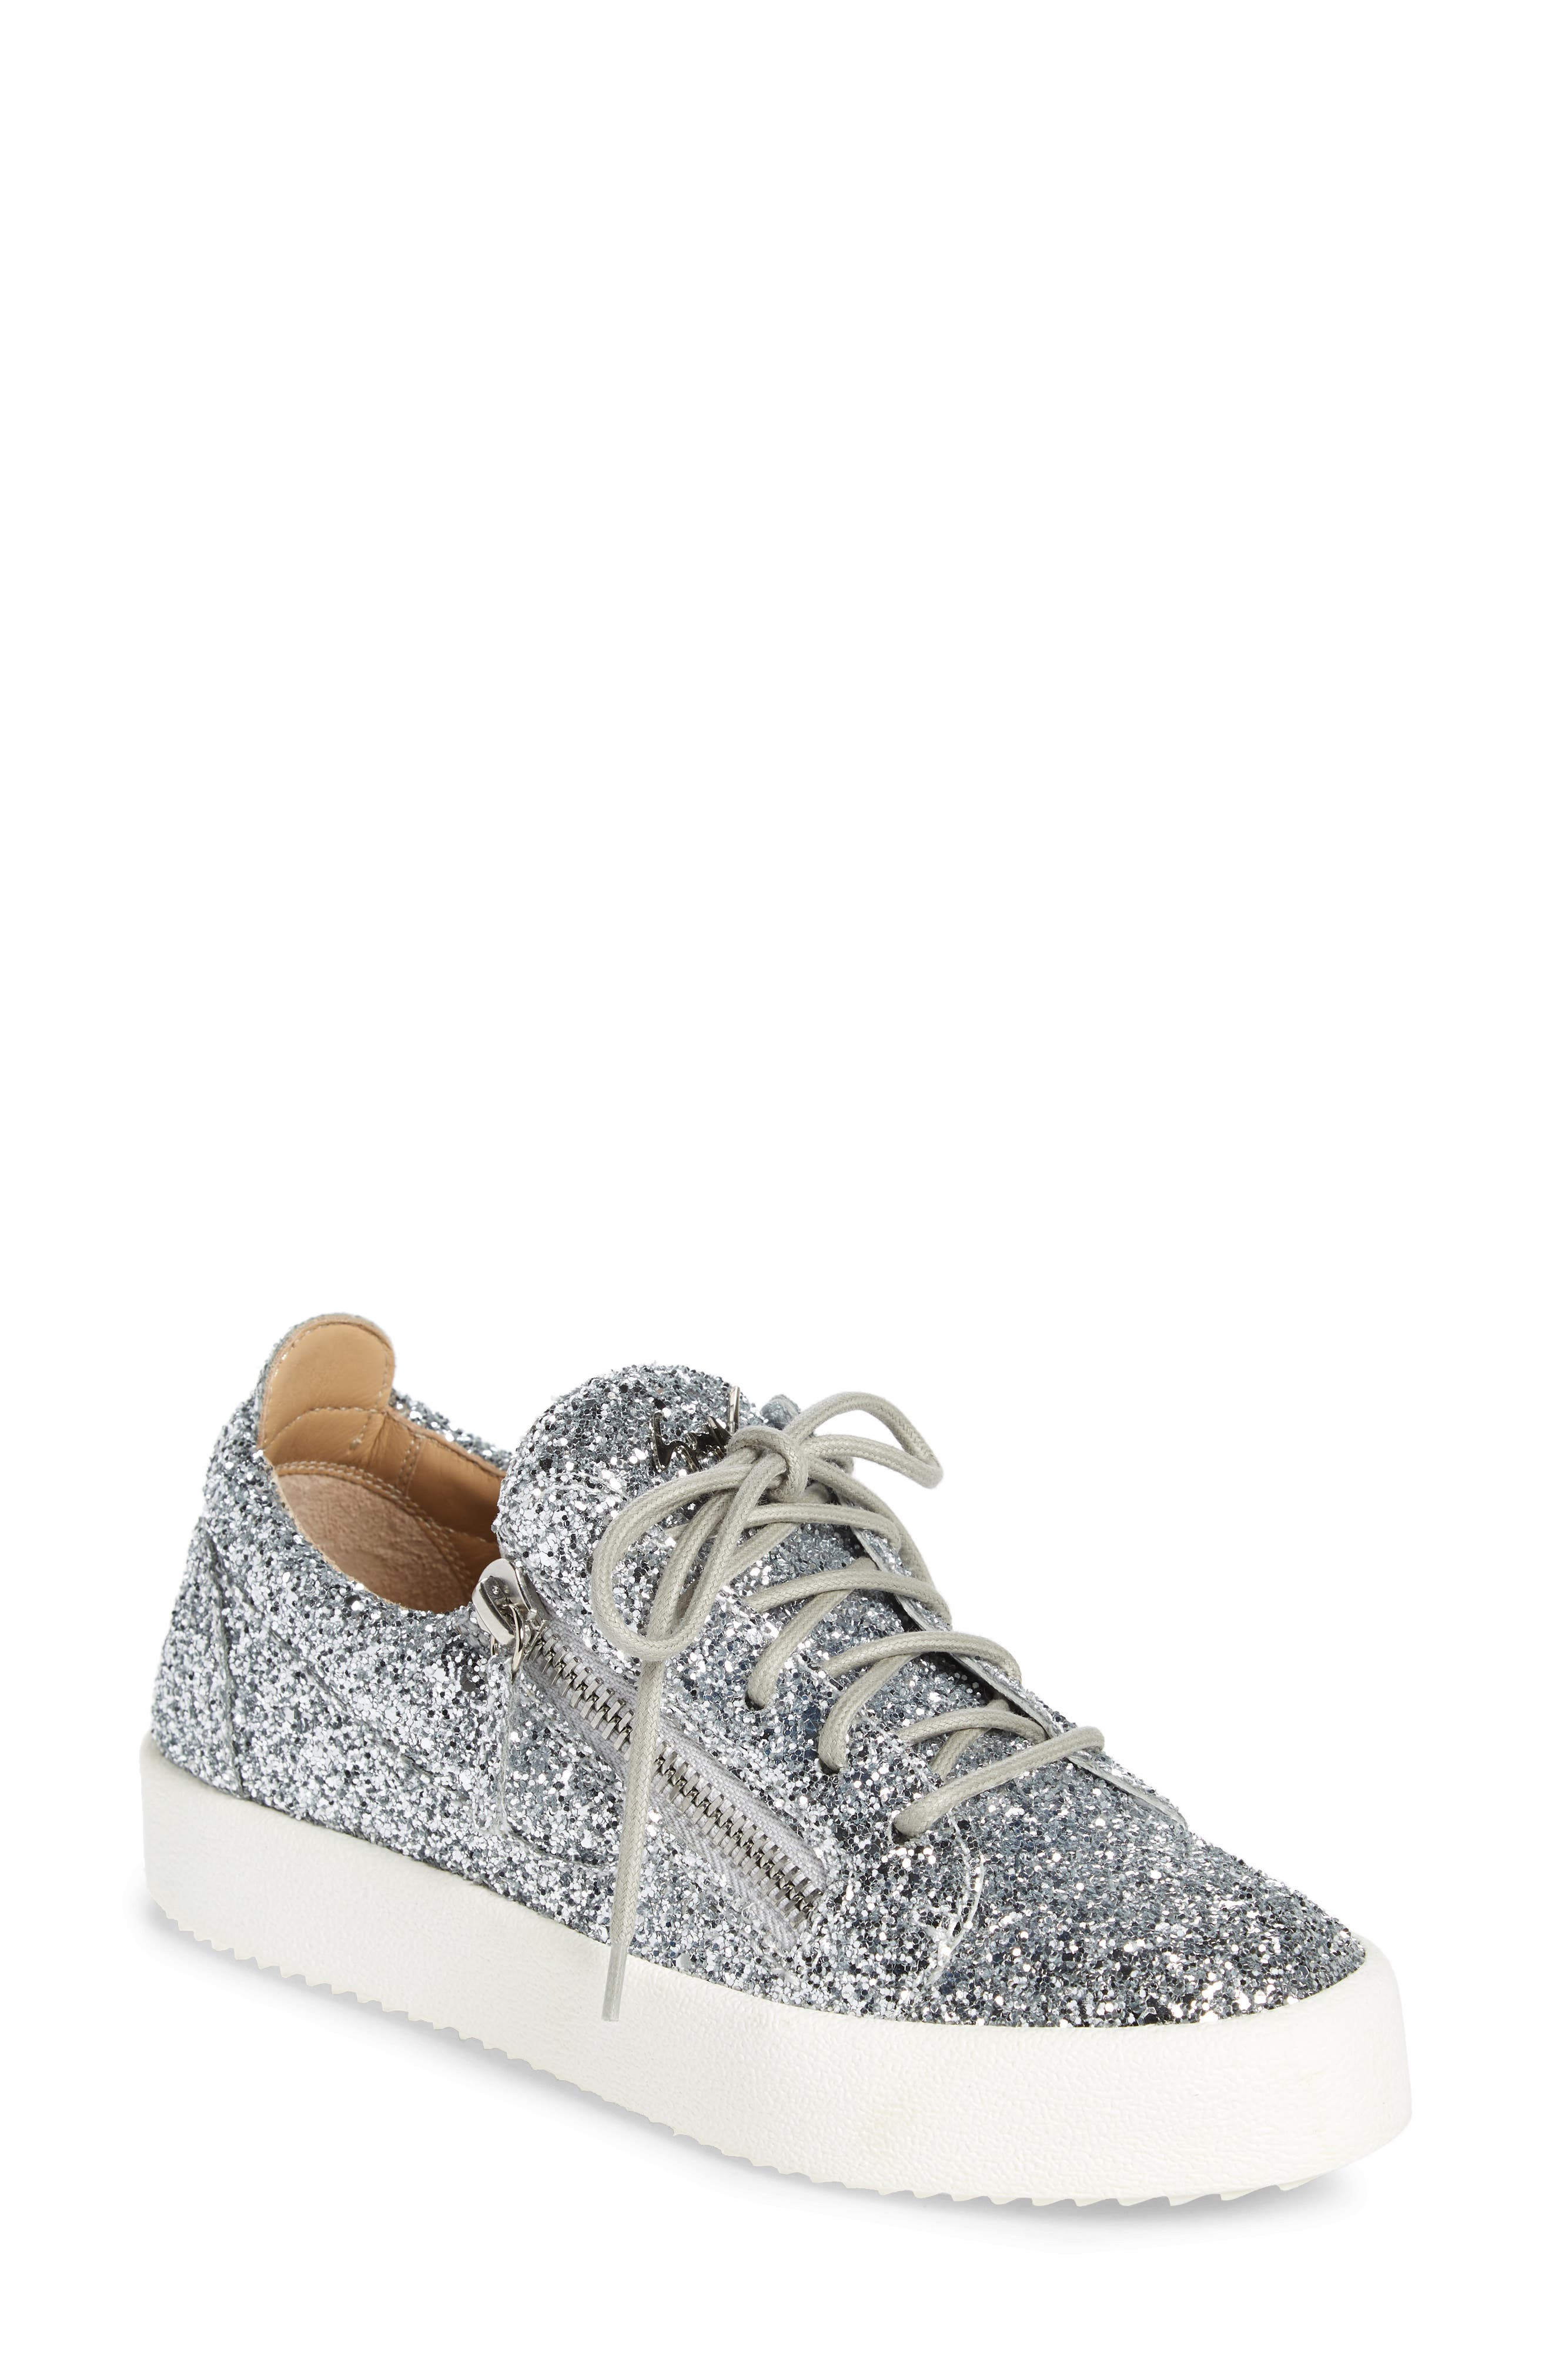 May London Low Top Sneaker,                         Main,                         color, SILVER GLITTER